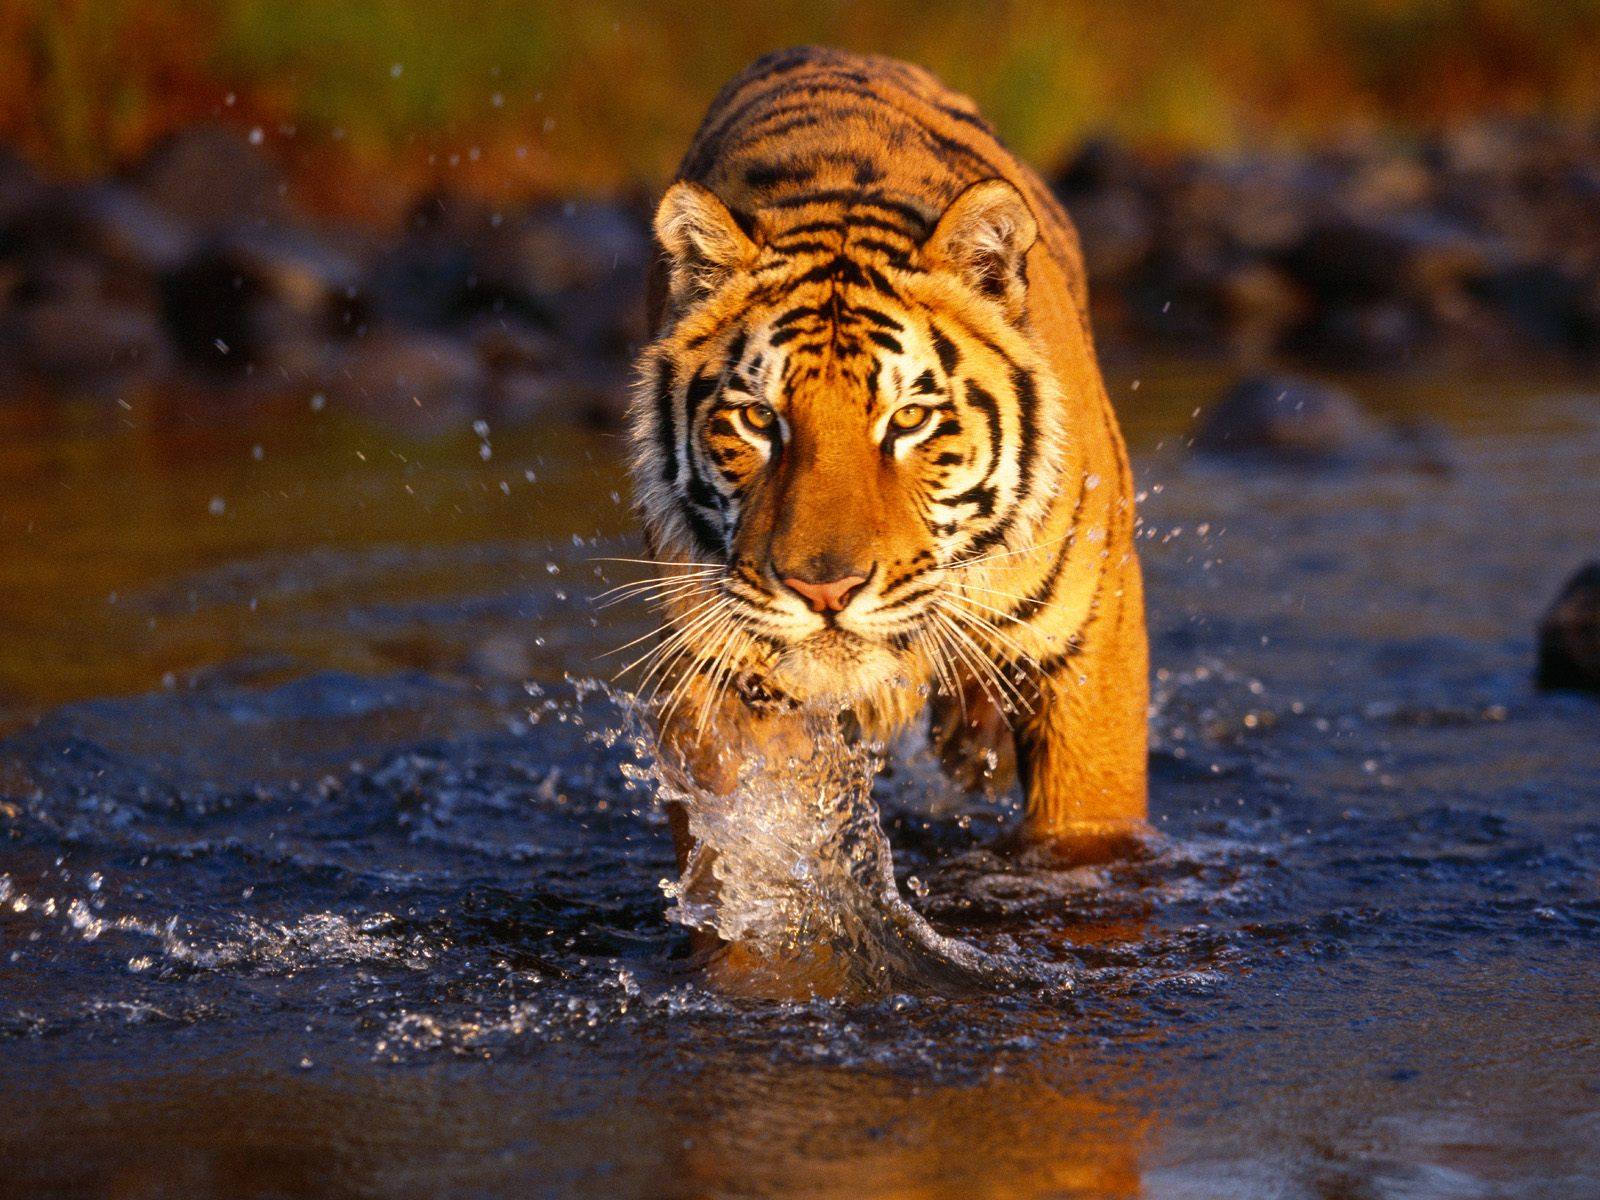 Japan: Tigers HD Wallpapers, Tiger Wallpaper for Desktop Backgrounds Free